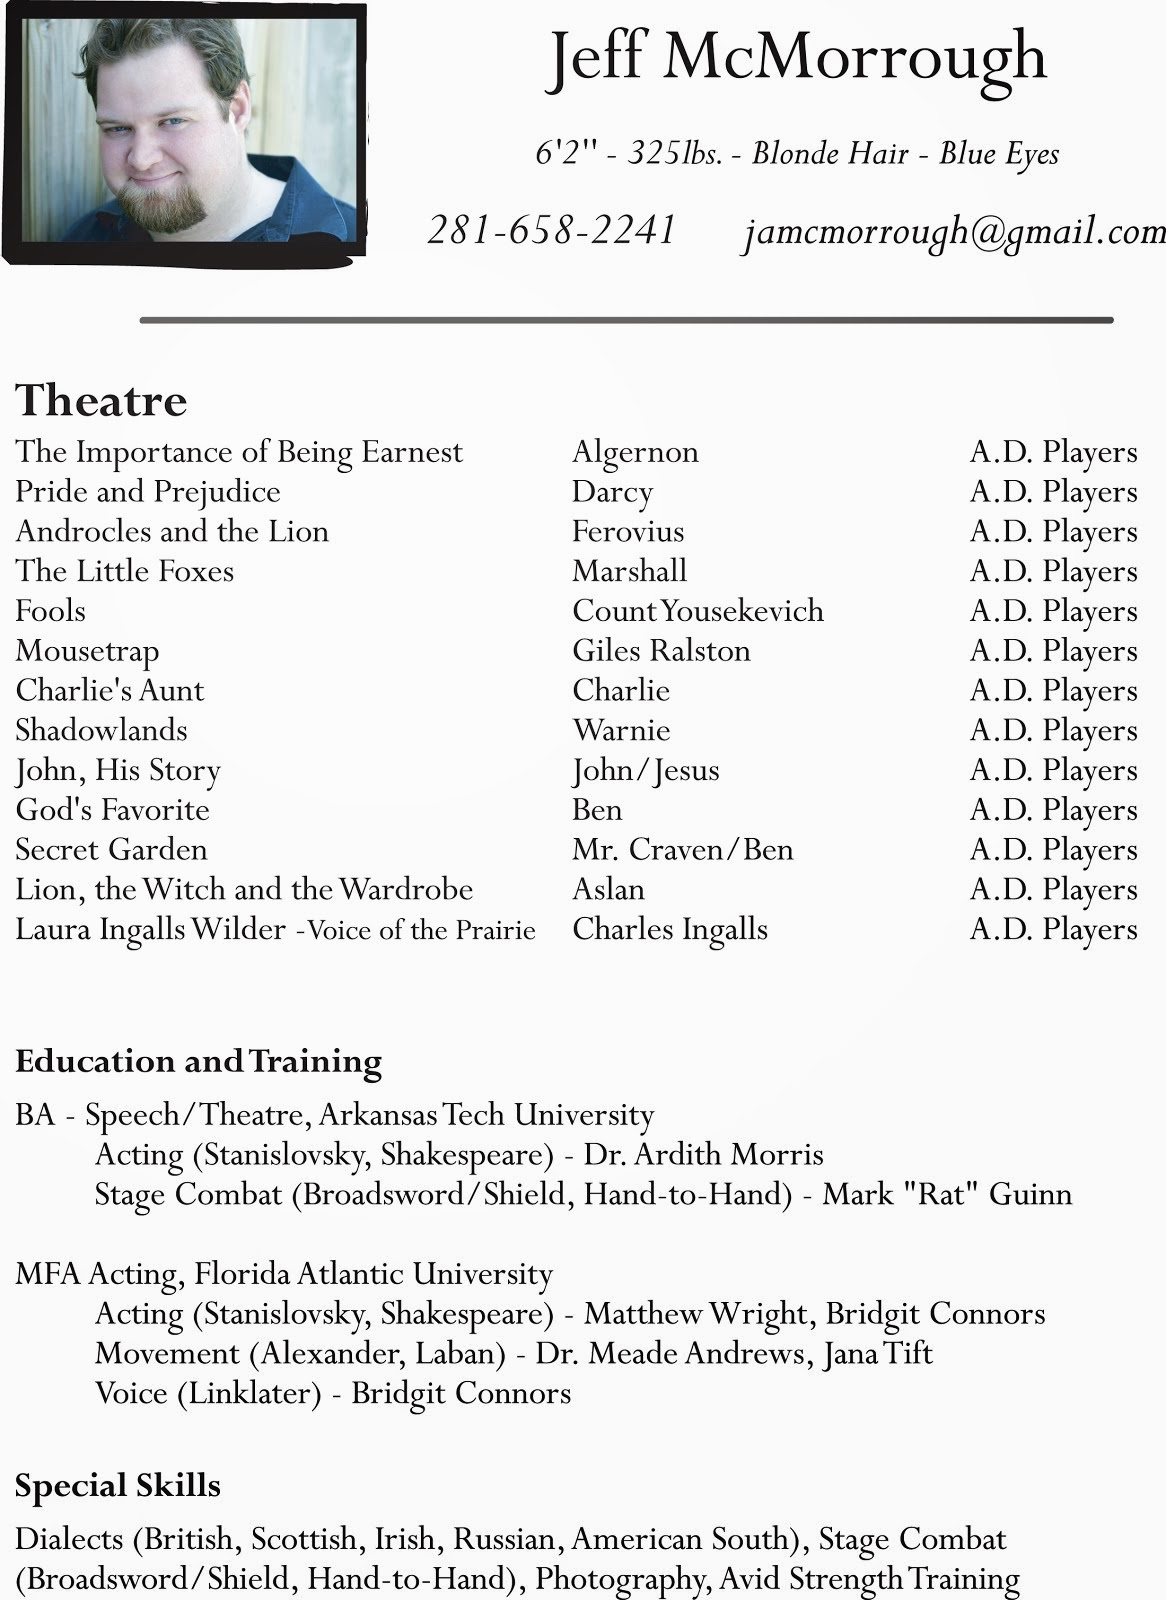 Acting Resume S Makeup Artist Resume S Acting Resume For Acting Theatre Resume  Beginner Acting Resume  Beginner Acting Resume